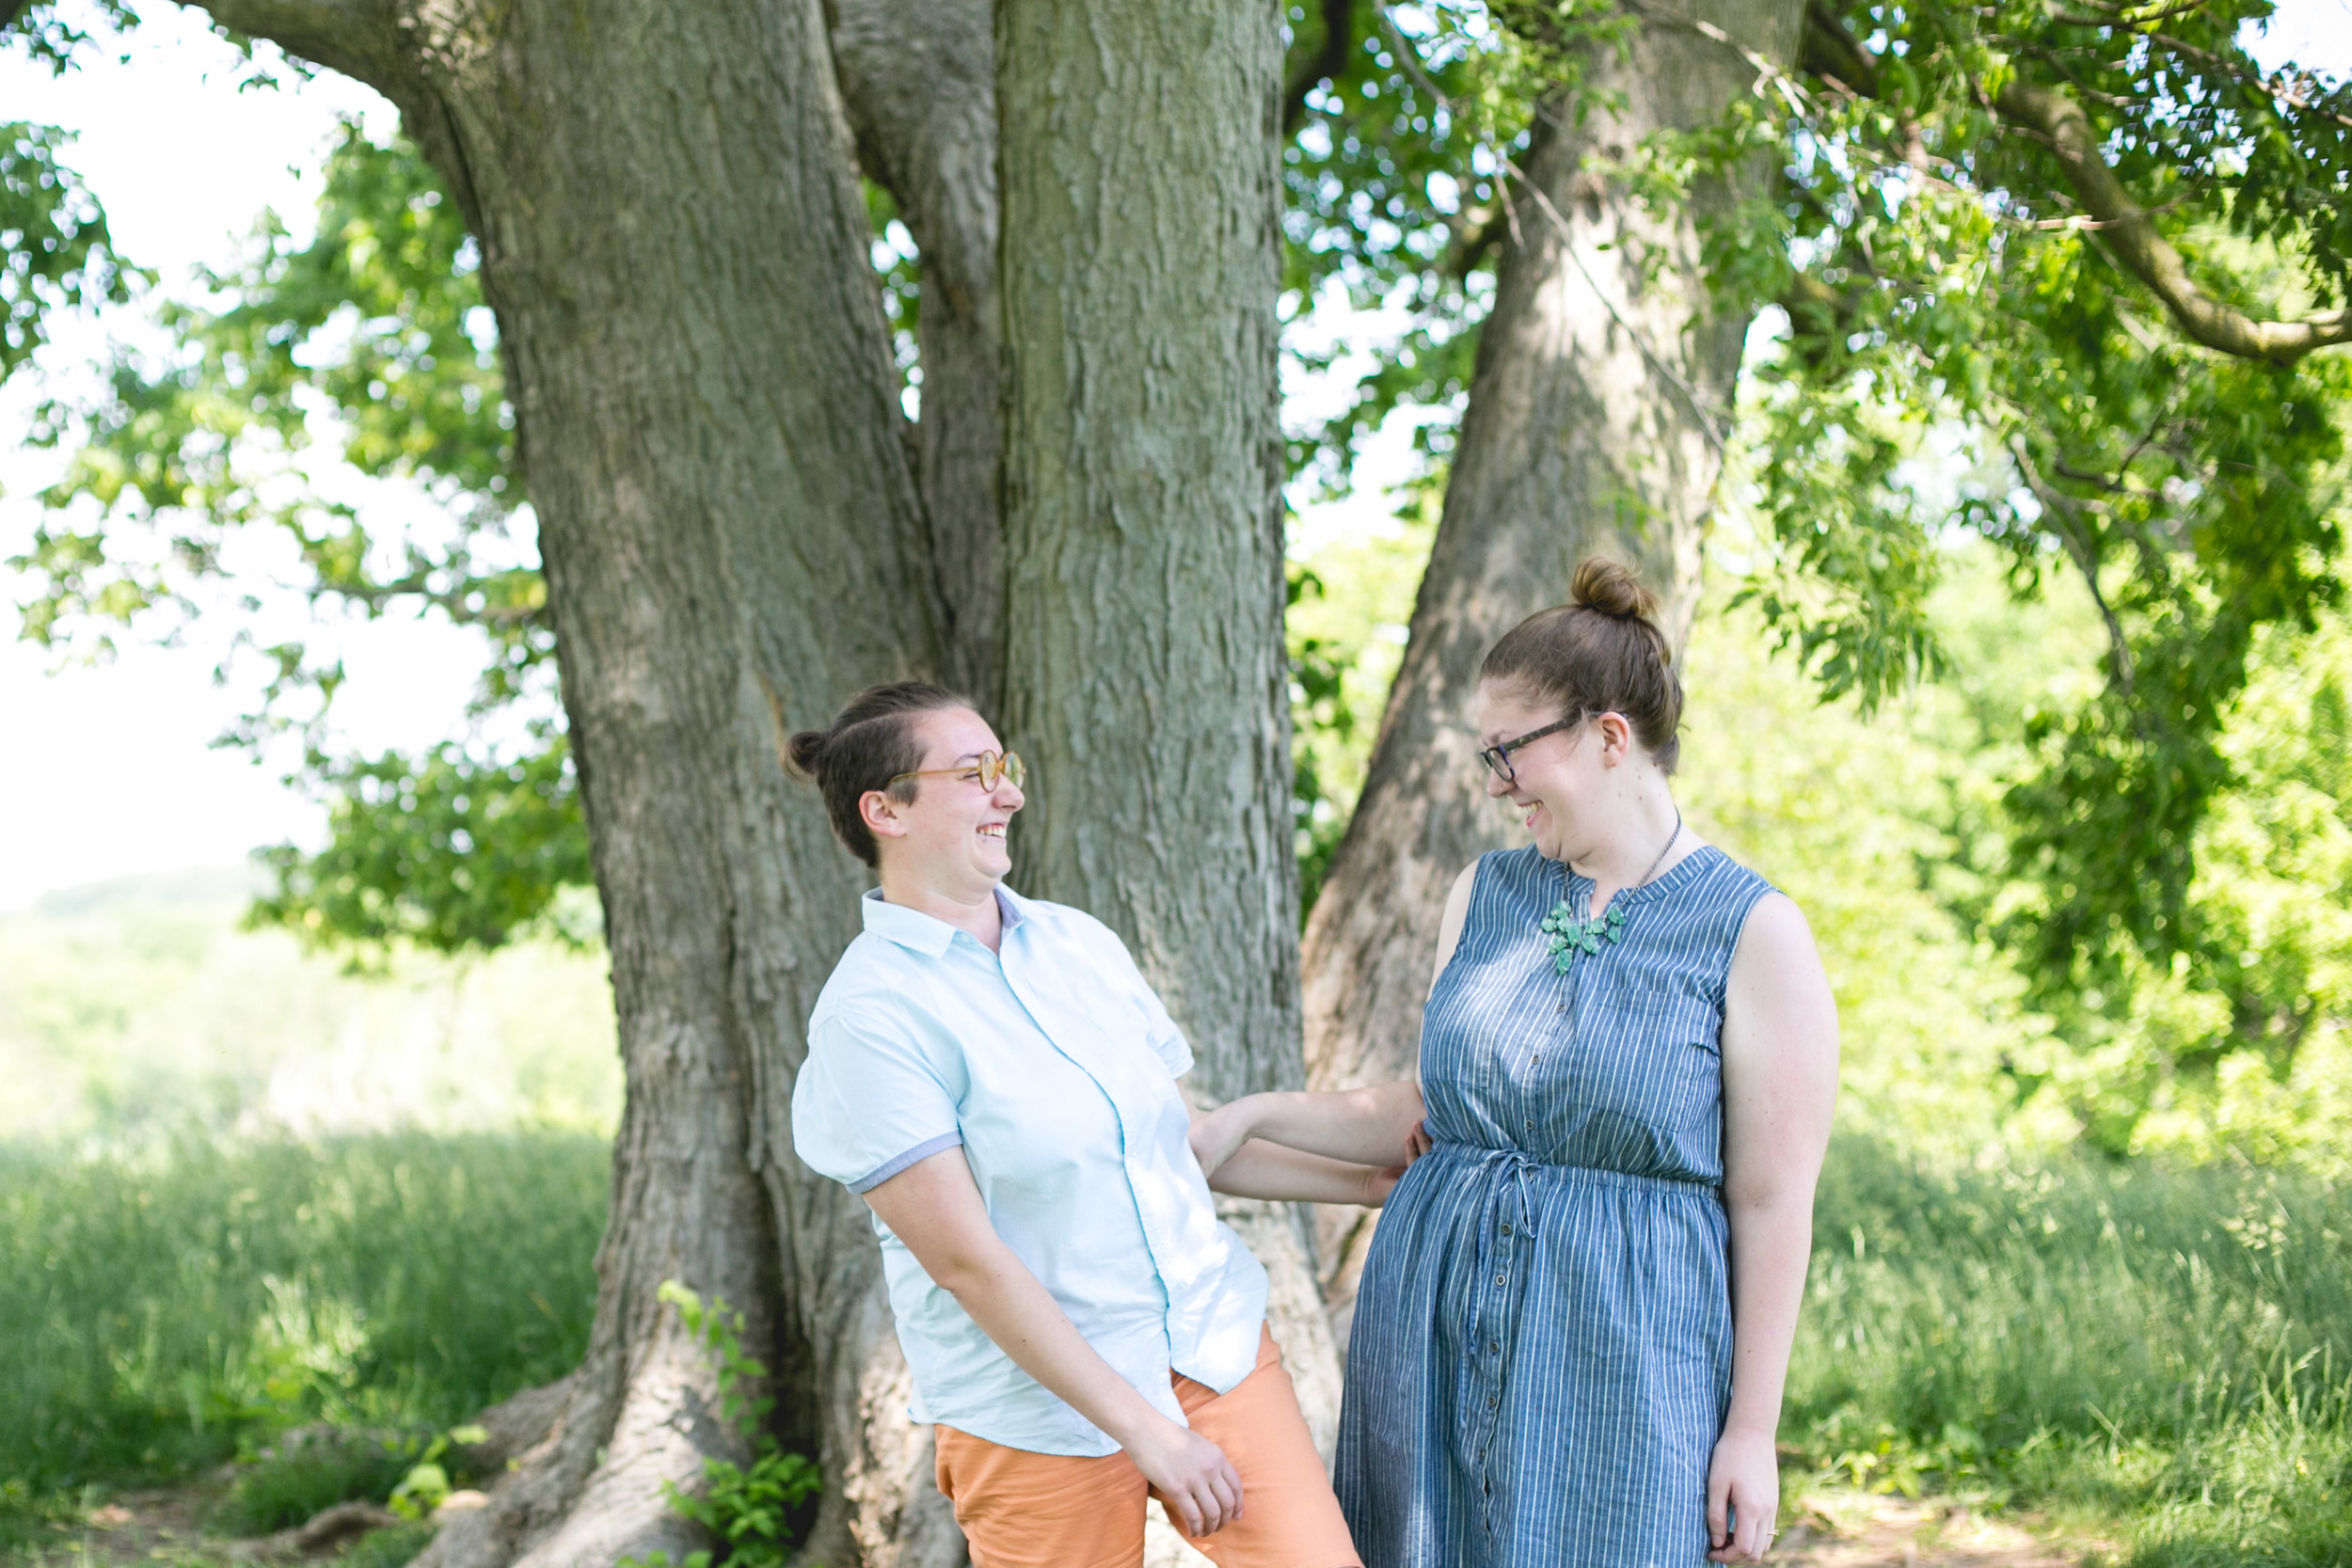 A spring Valley Forge State Park, King of Prussia Pa Queer Engagement session with Alex and Lee by Swiger Photography, Philadelphia's Lesbian Photographer